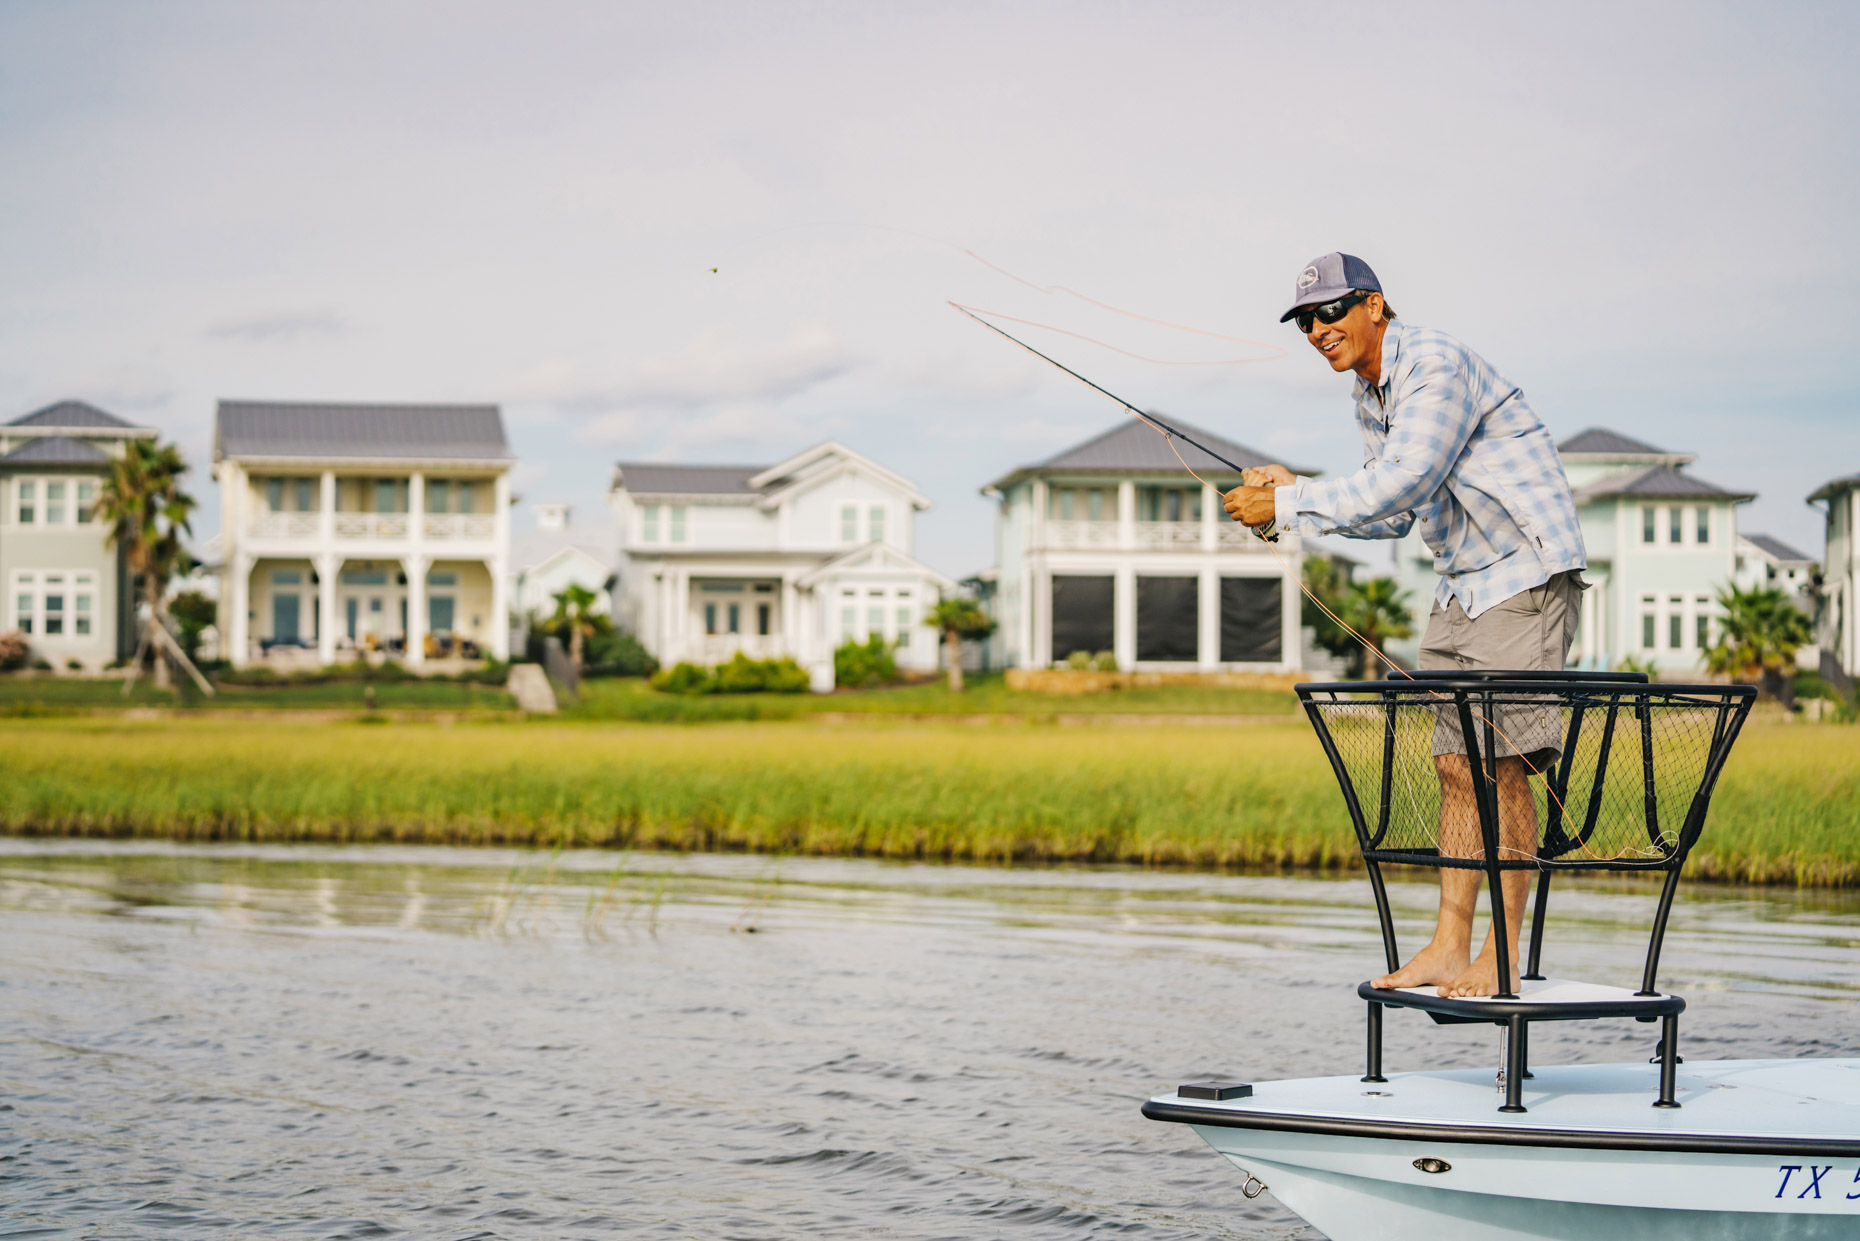 Happy man fly fishing from boat in front of houses